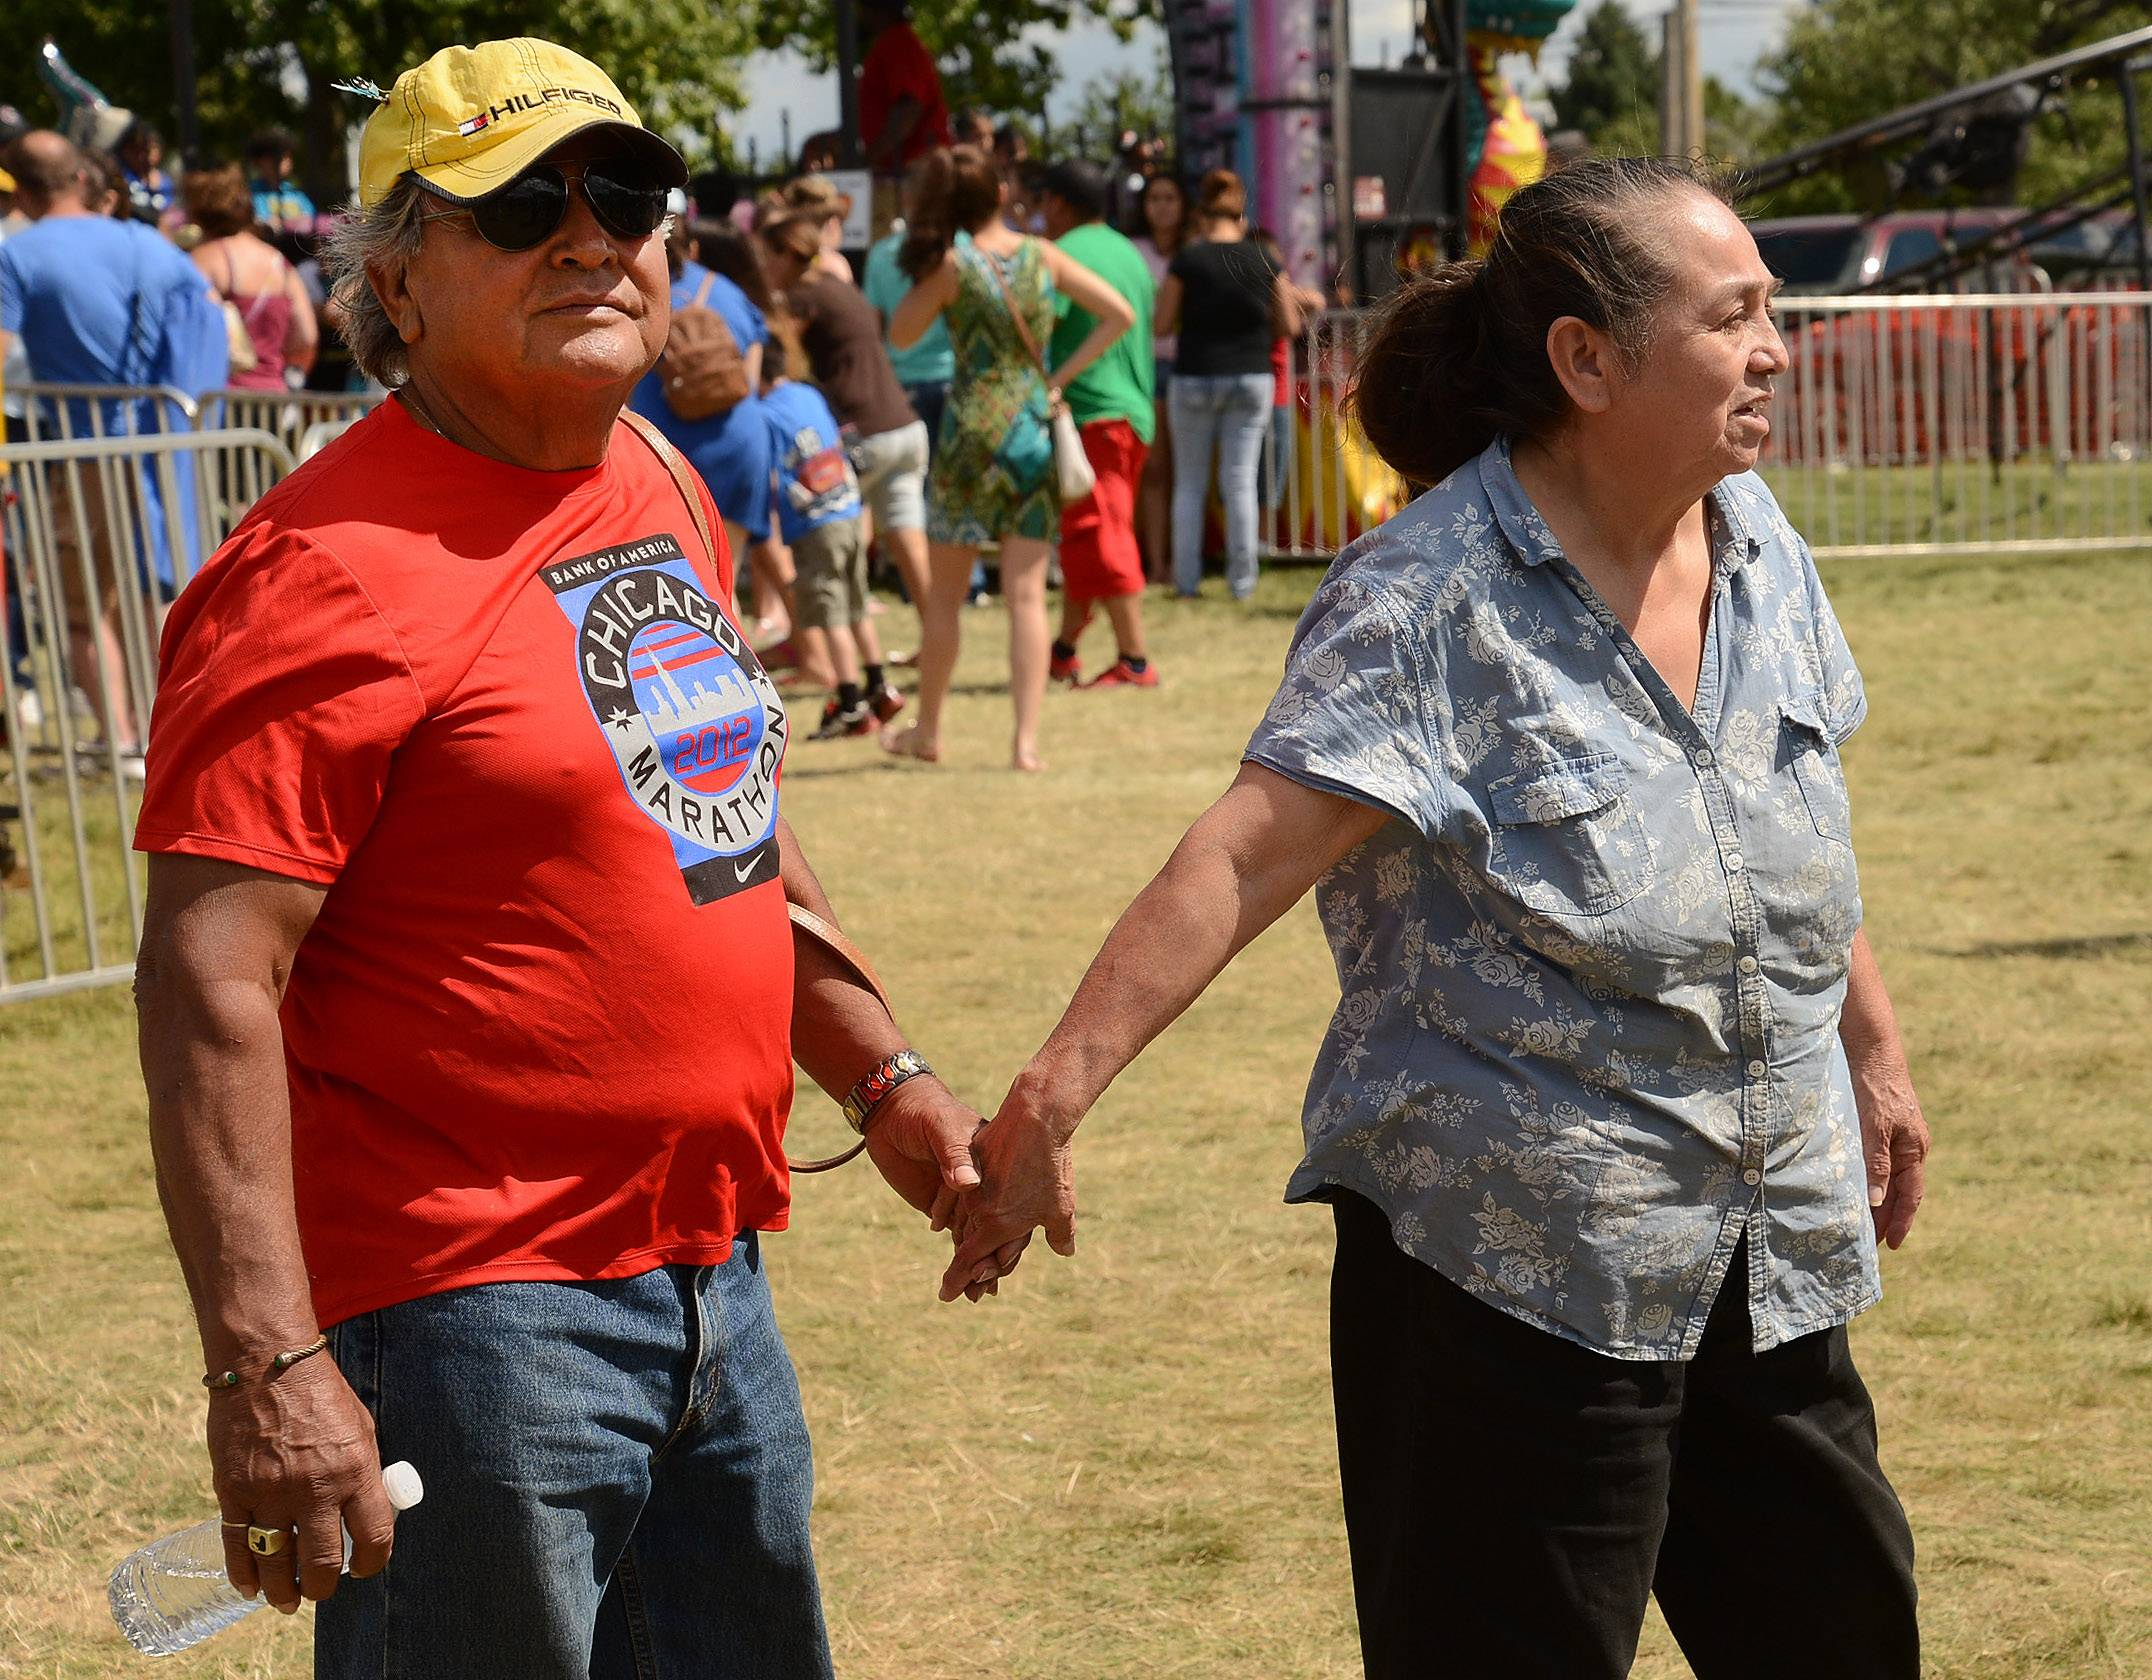 Felipe De La Rosa of Streamwood and his wife, Anita, watch their great-granddaughter on one of the rides as they stroll the midway Sunday during the final day of the Streamwood Summer Celebration.